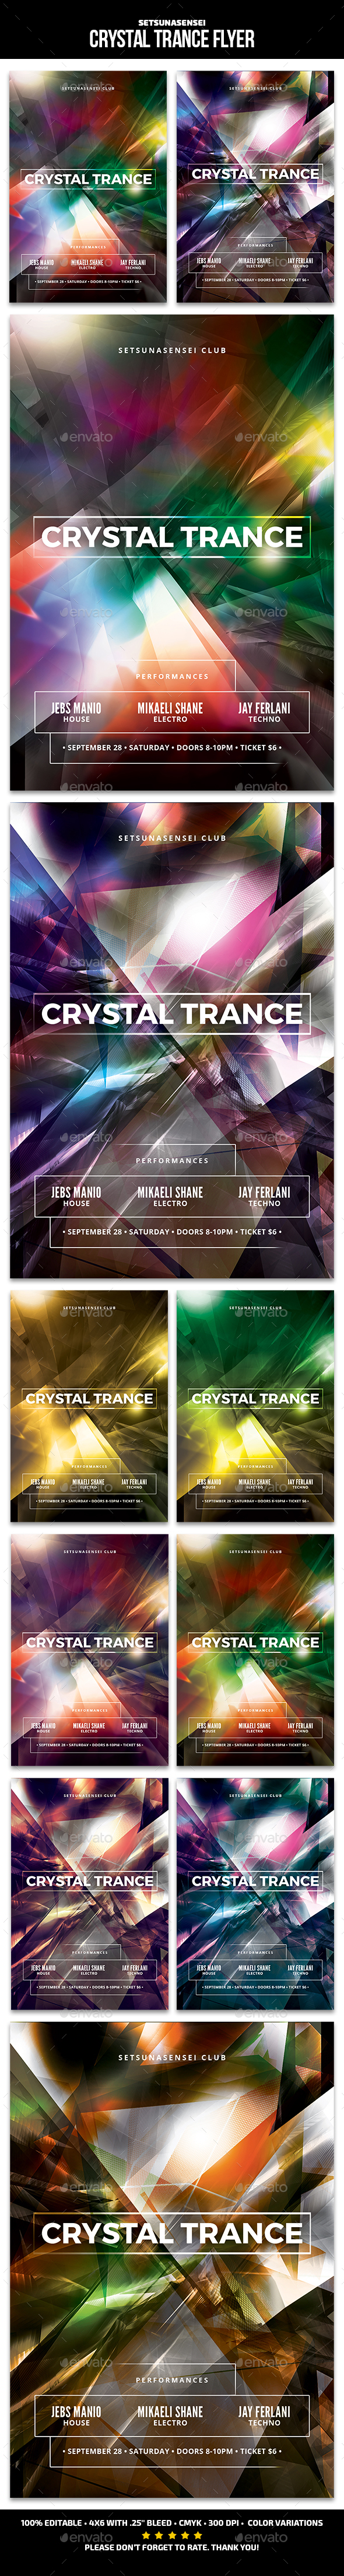 Crystal Trance Flyer - Clubs & Parties Events